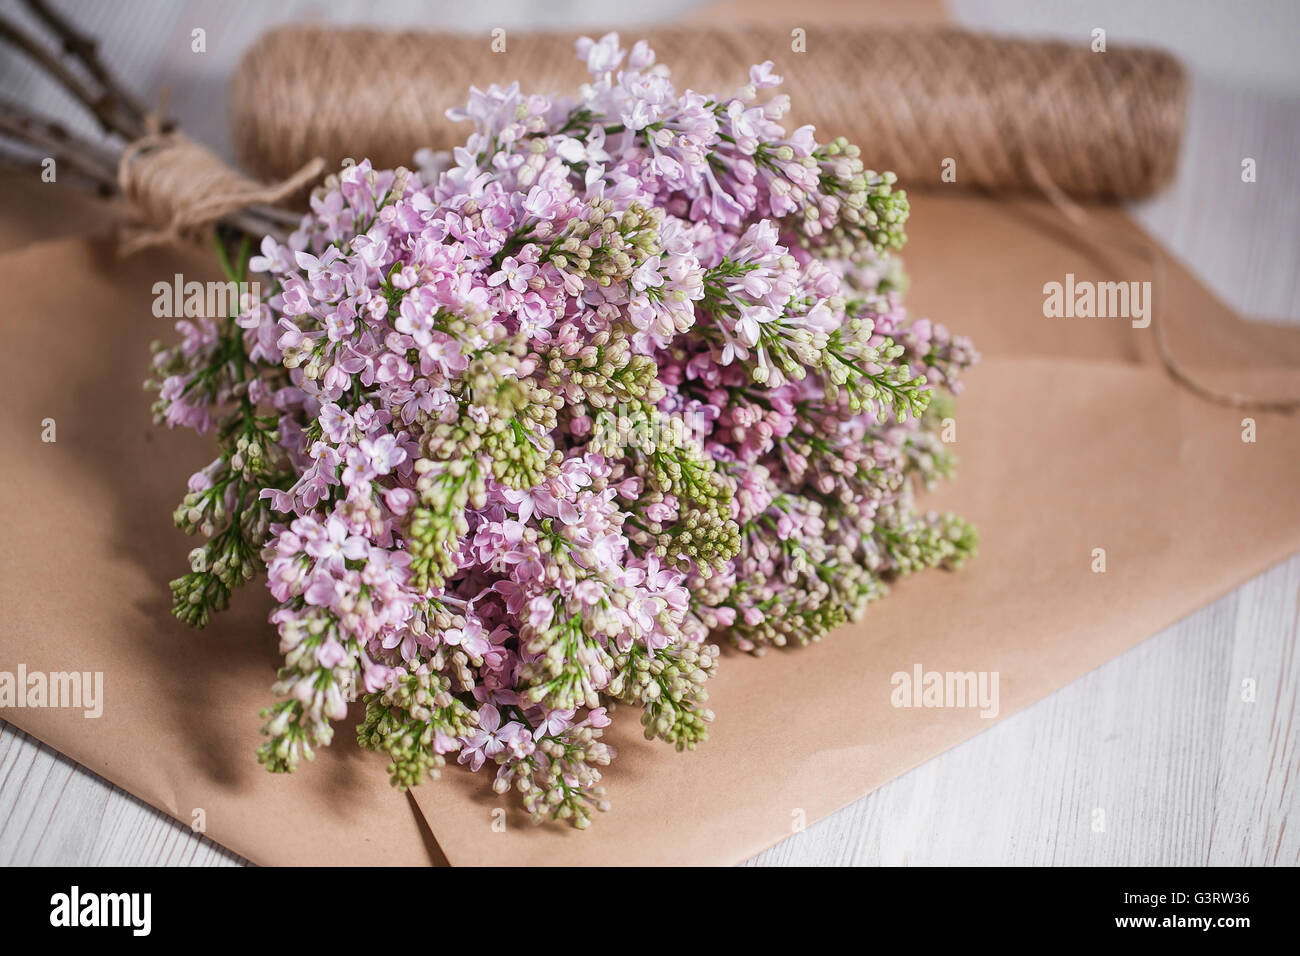 Empty postal envelope and bouquet of lilac flowers on the white wooden background, copy space. Top view. - Stock Image